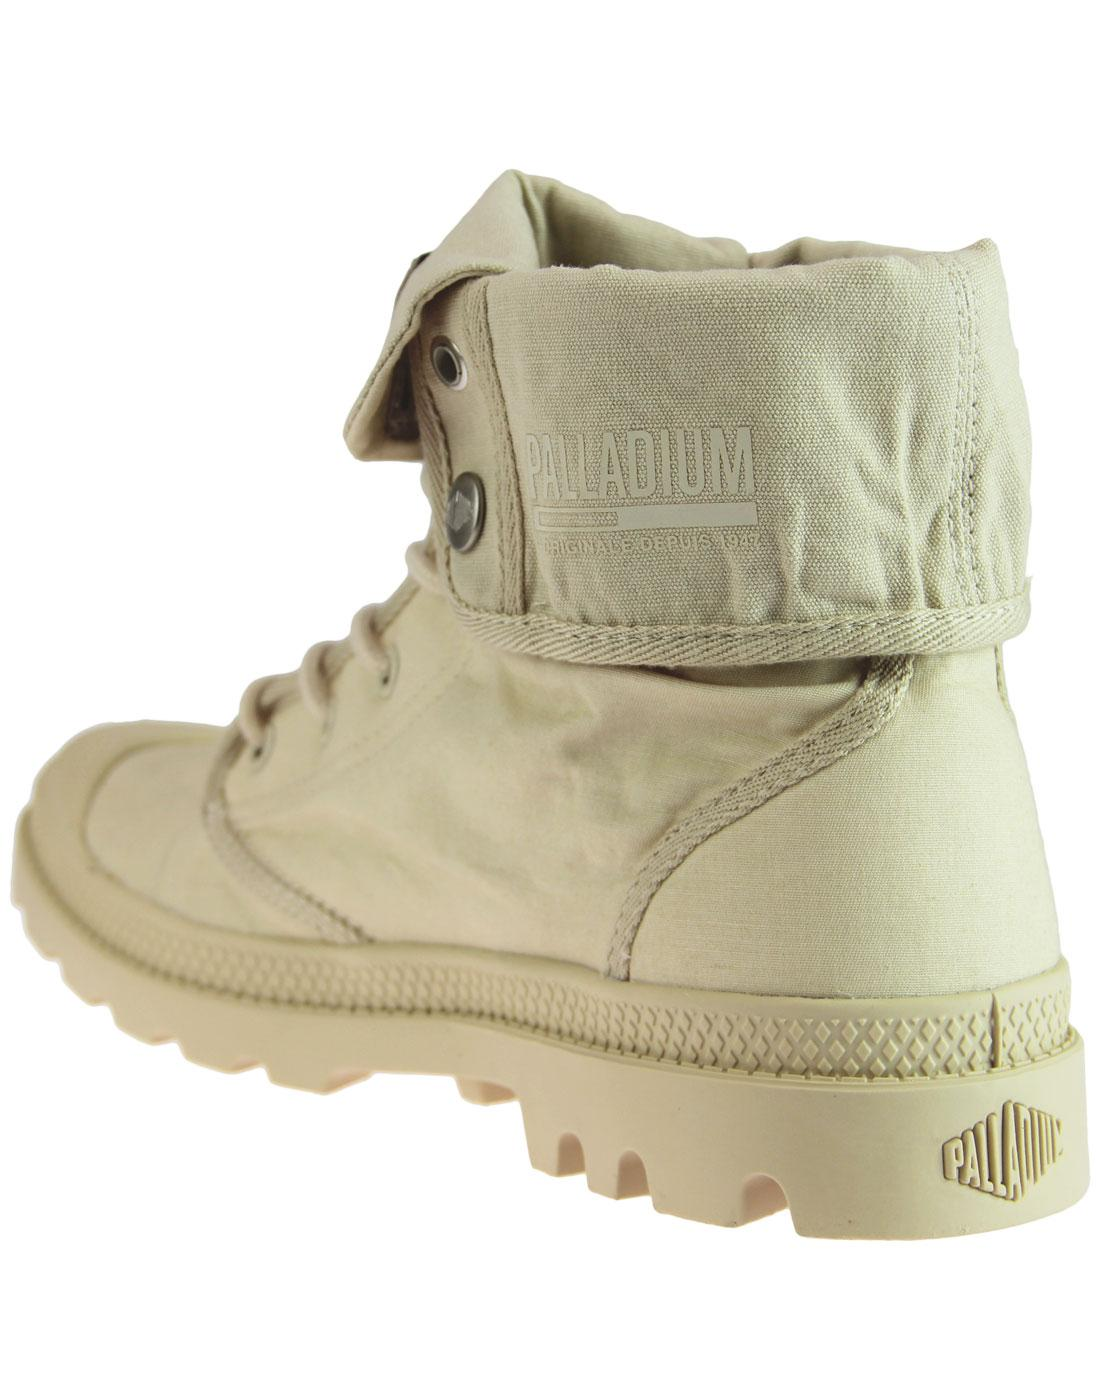 7909003d255 PALLADIUM Baggy Army Training Camp Retro Boots in Sahara